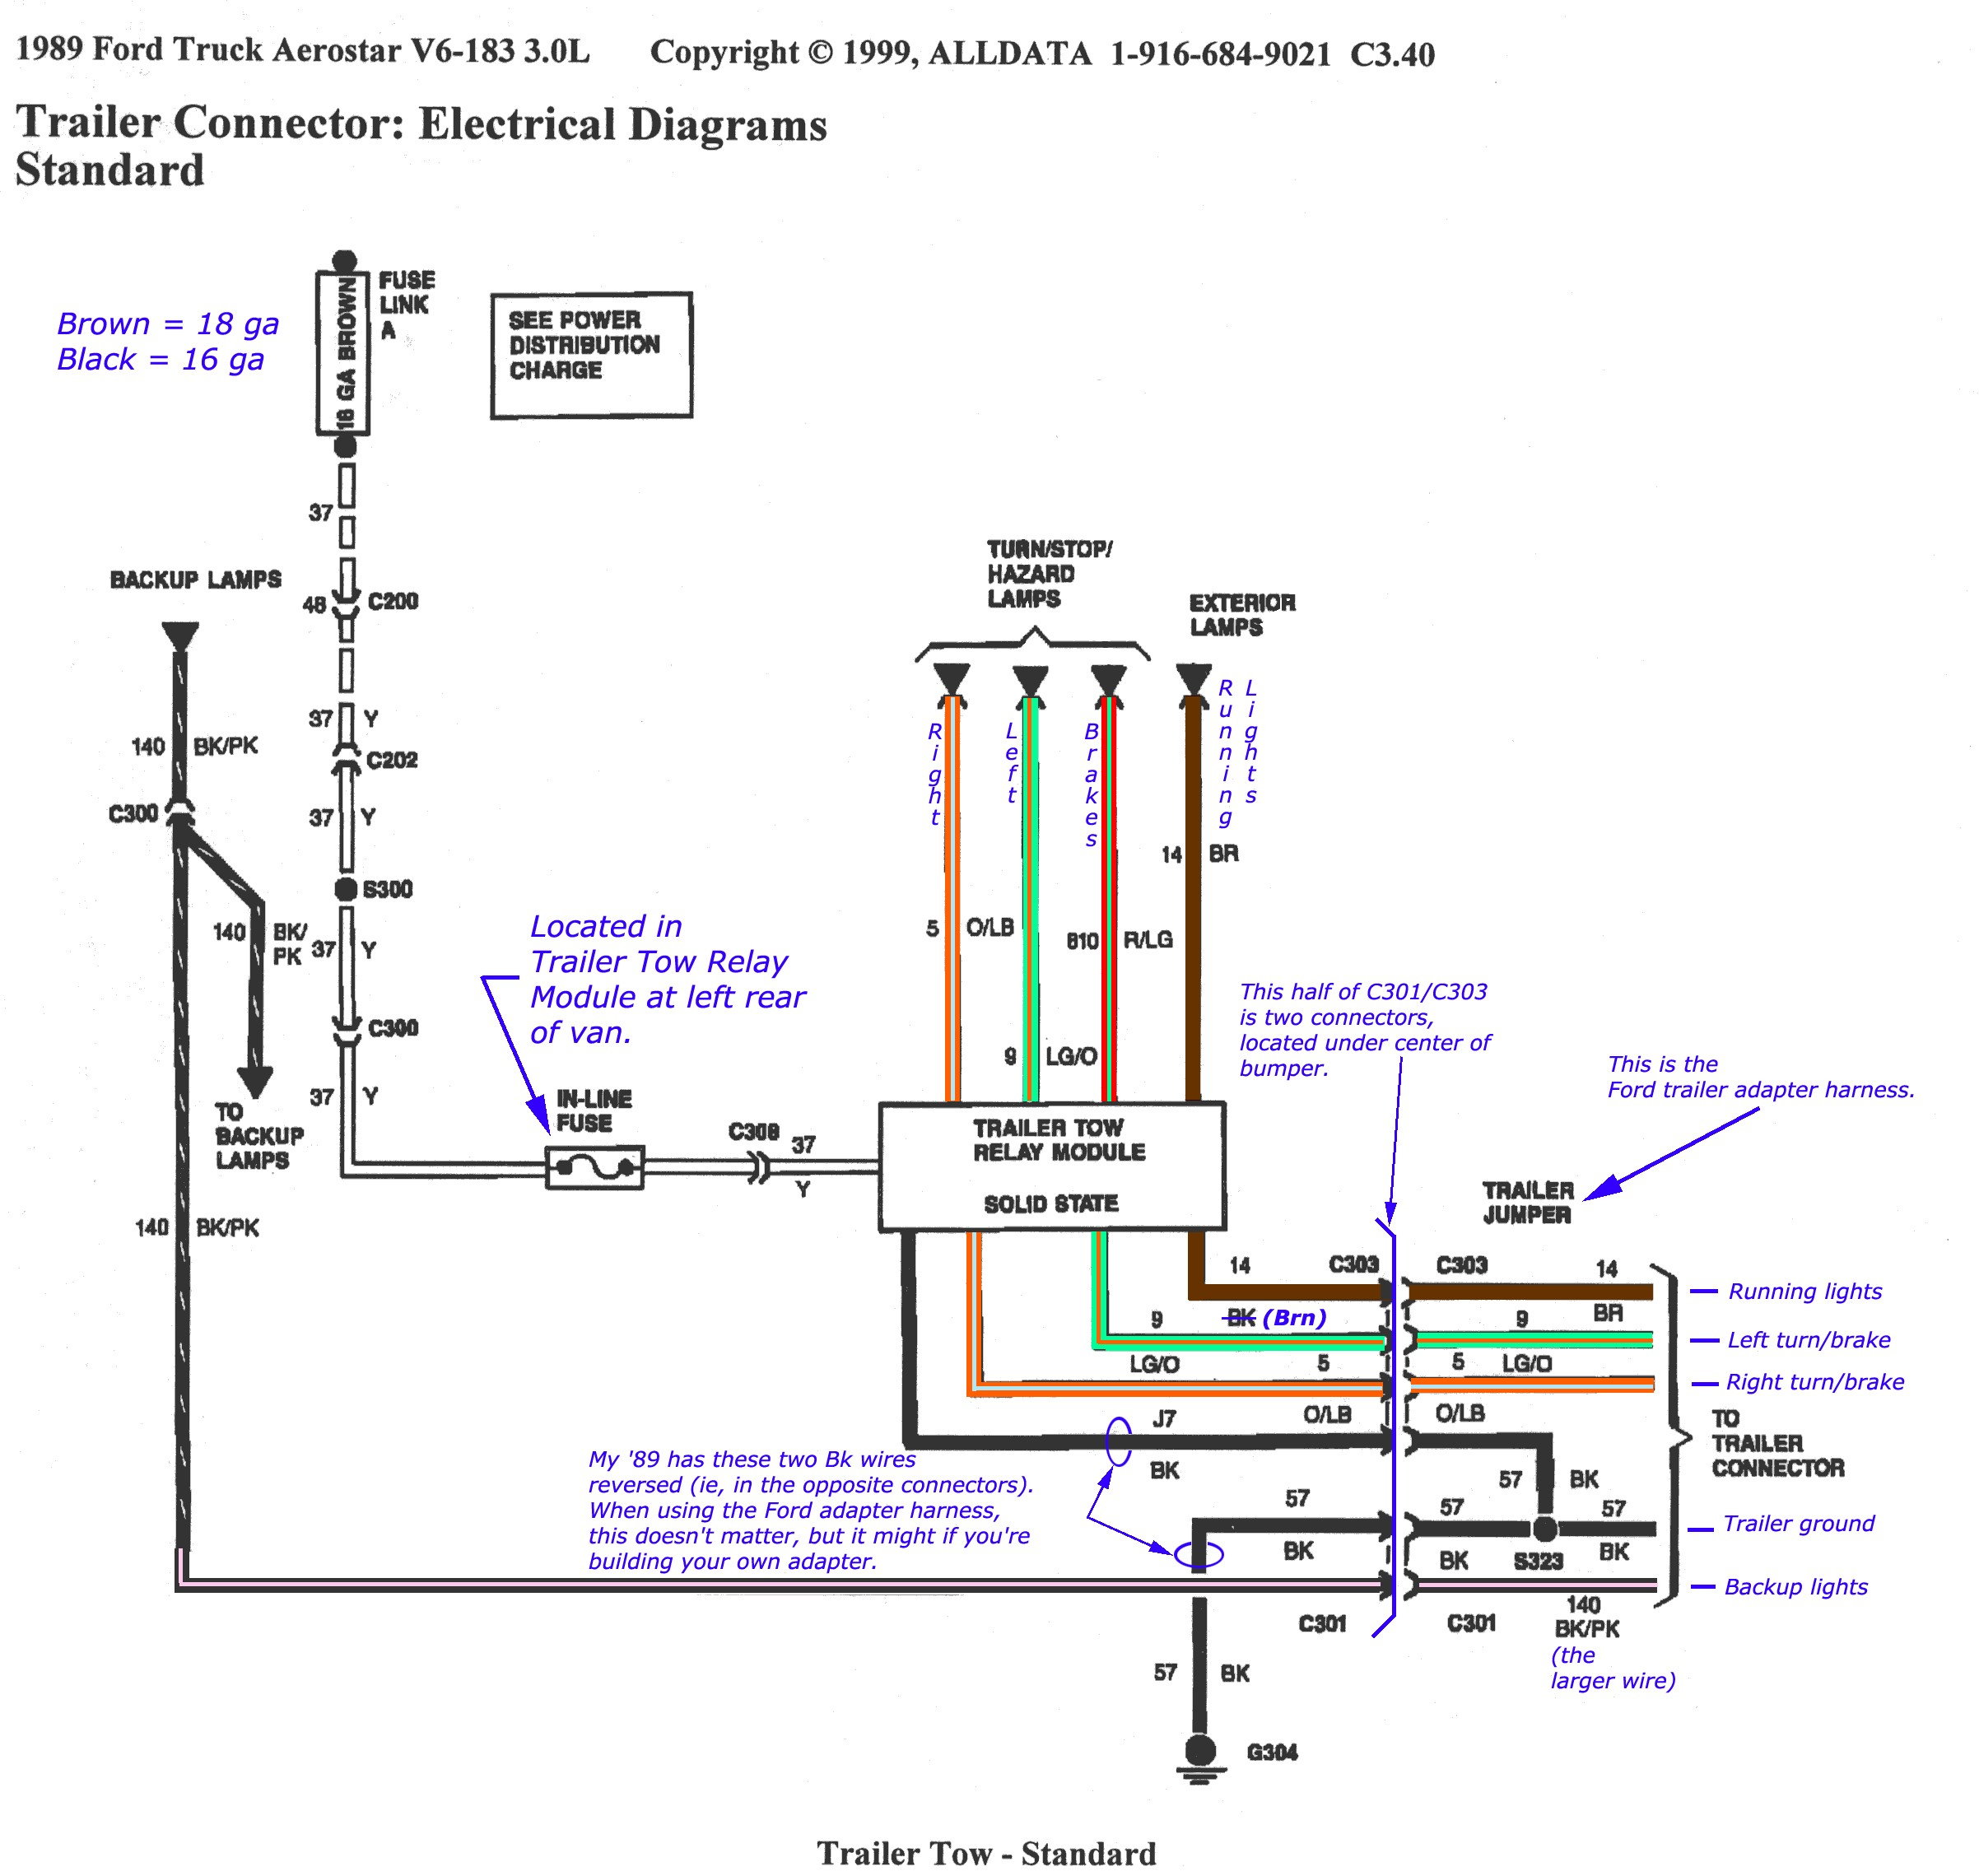 Class 8 Trailer Wiring Diagram | Wiring Diagram - Class 8 Trailer Wiring Diagram